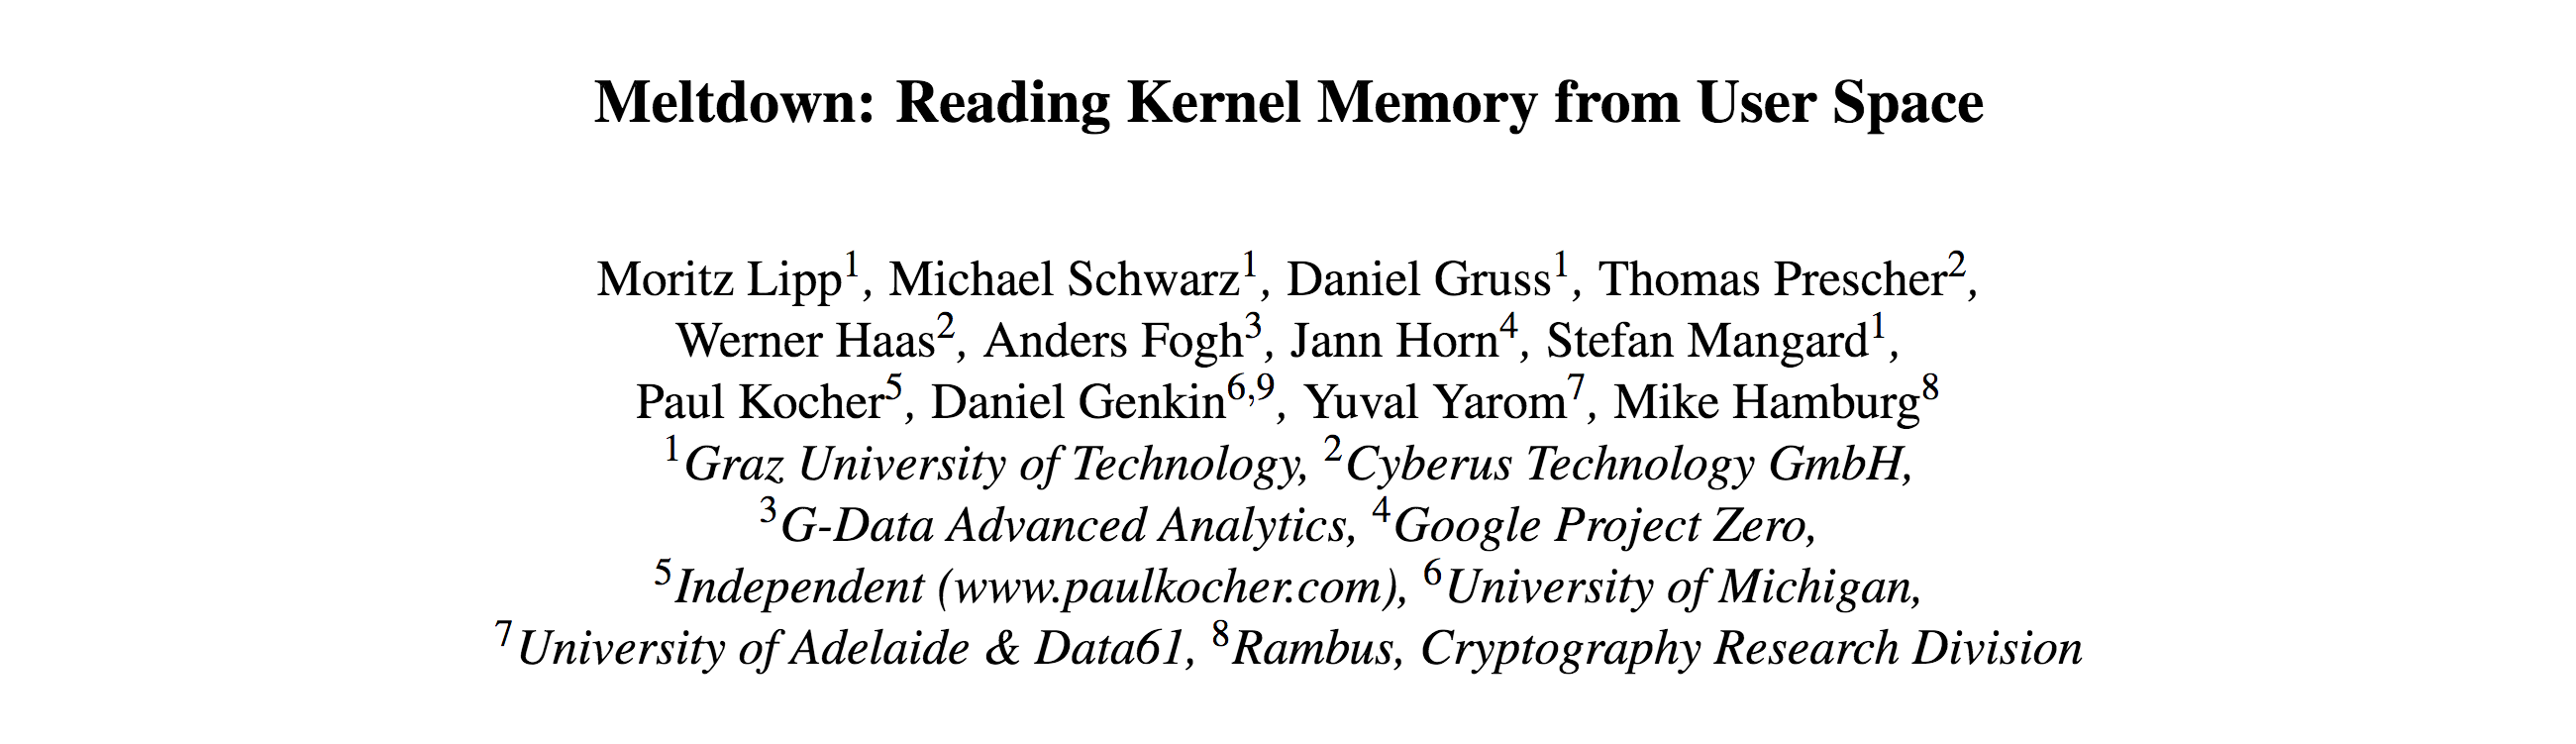 Meltdown: Reading Kernel Memory from User Space.